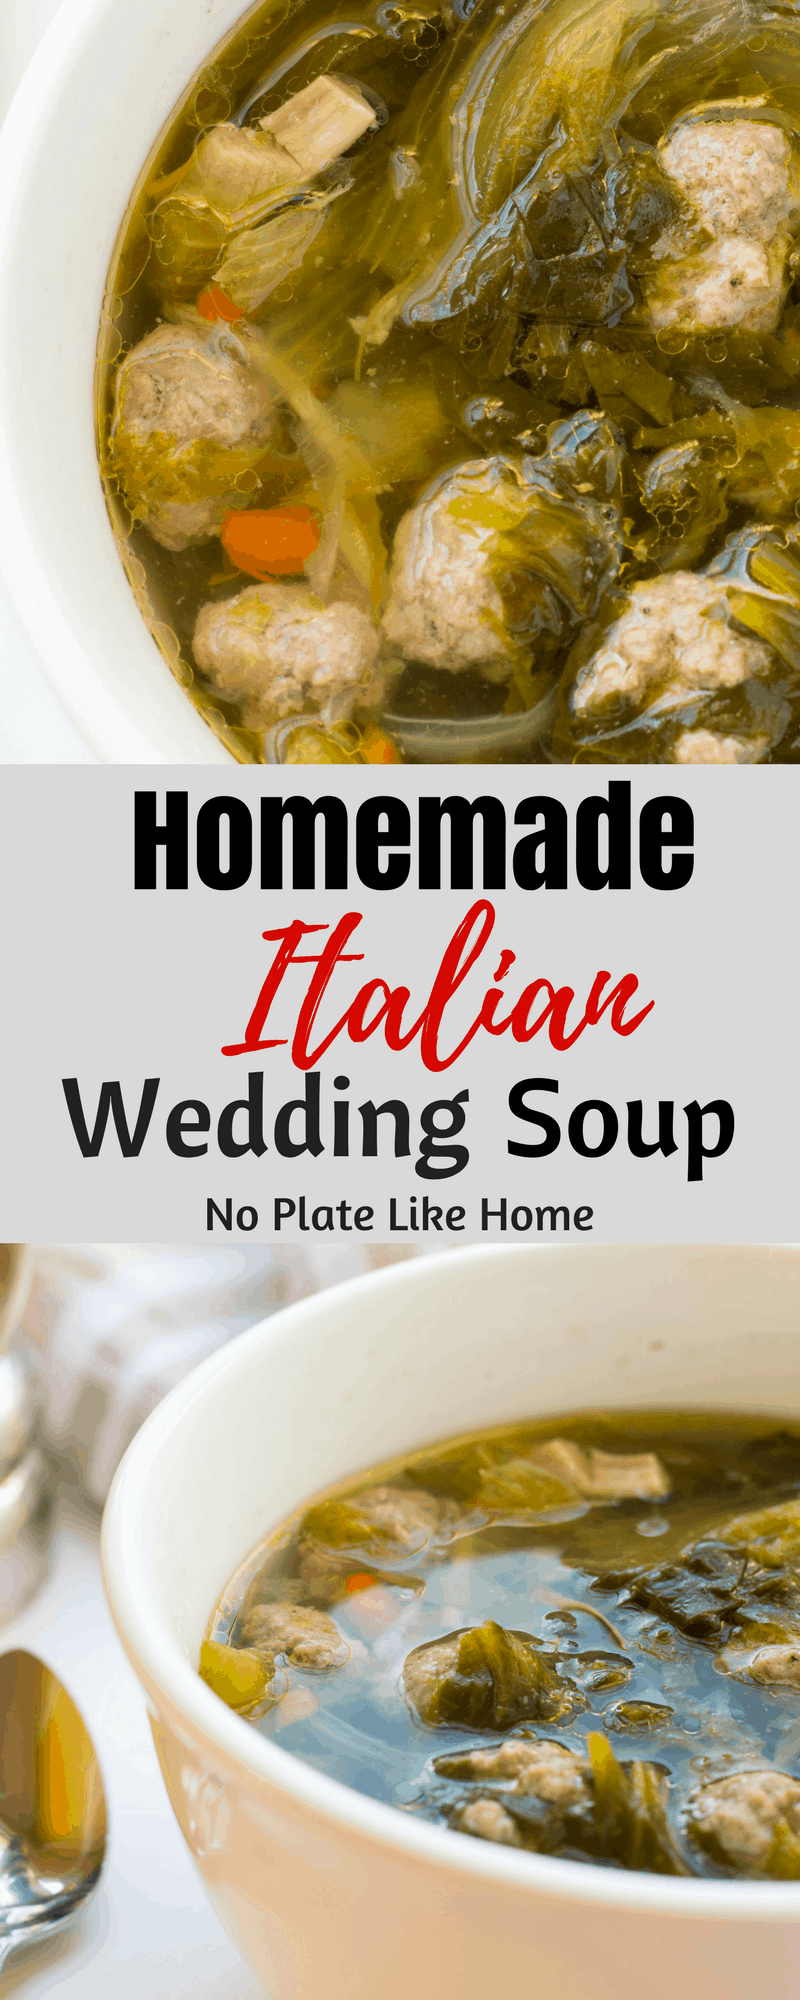 One Pot Authentic Homemade Italian Wedding Soup - No Plate Like Home